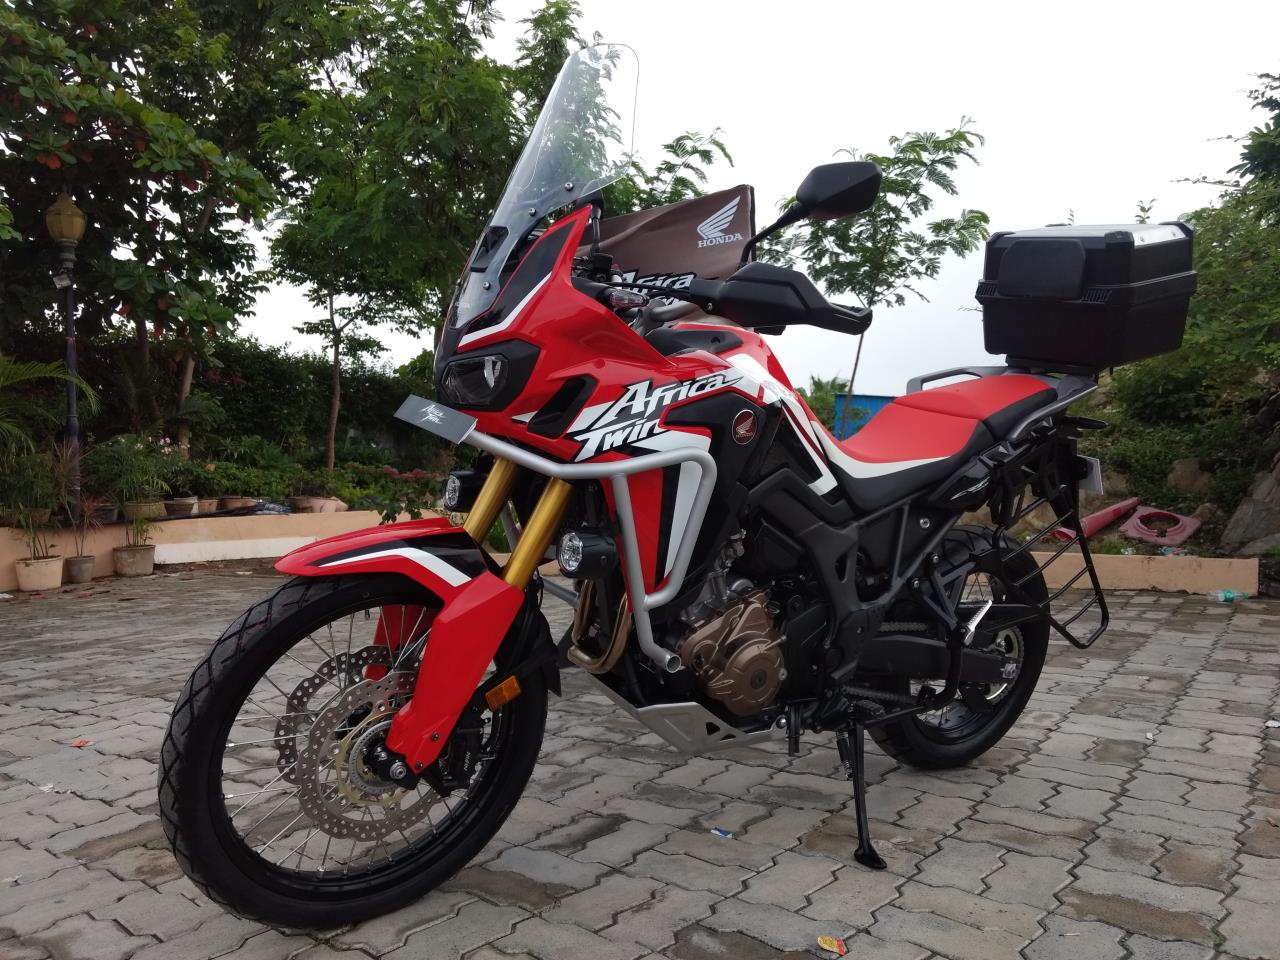 Honda Africa Twin India review with accessories